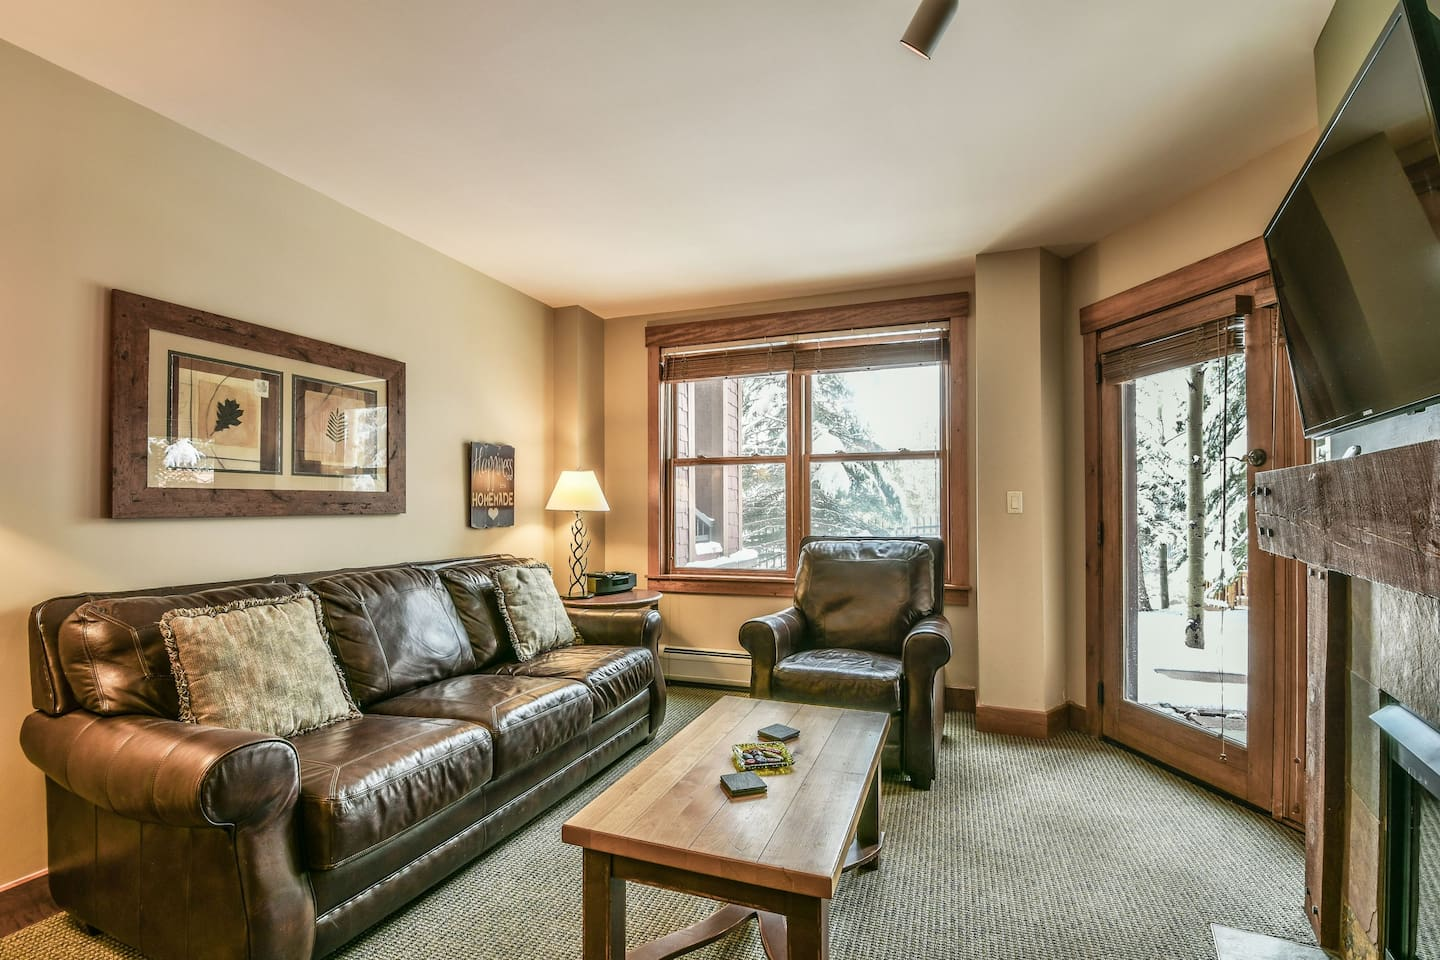 A big living room perfect for entertaining with a great view of the mountains